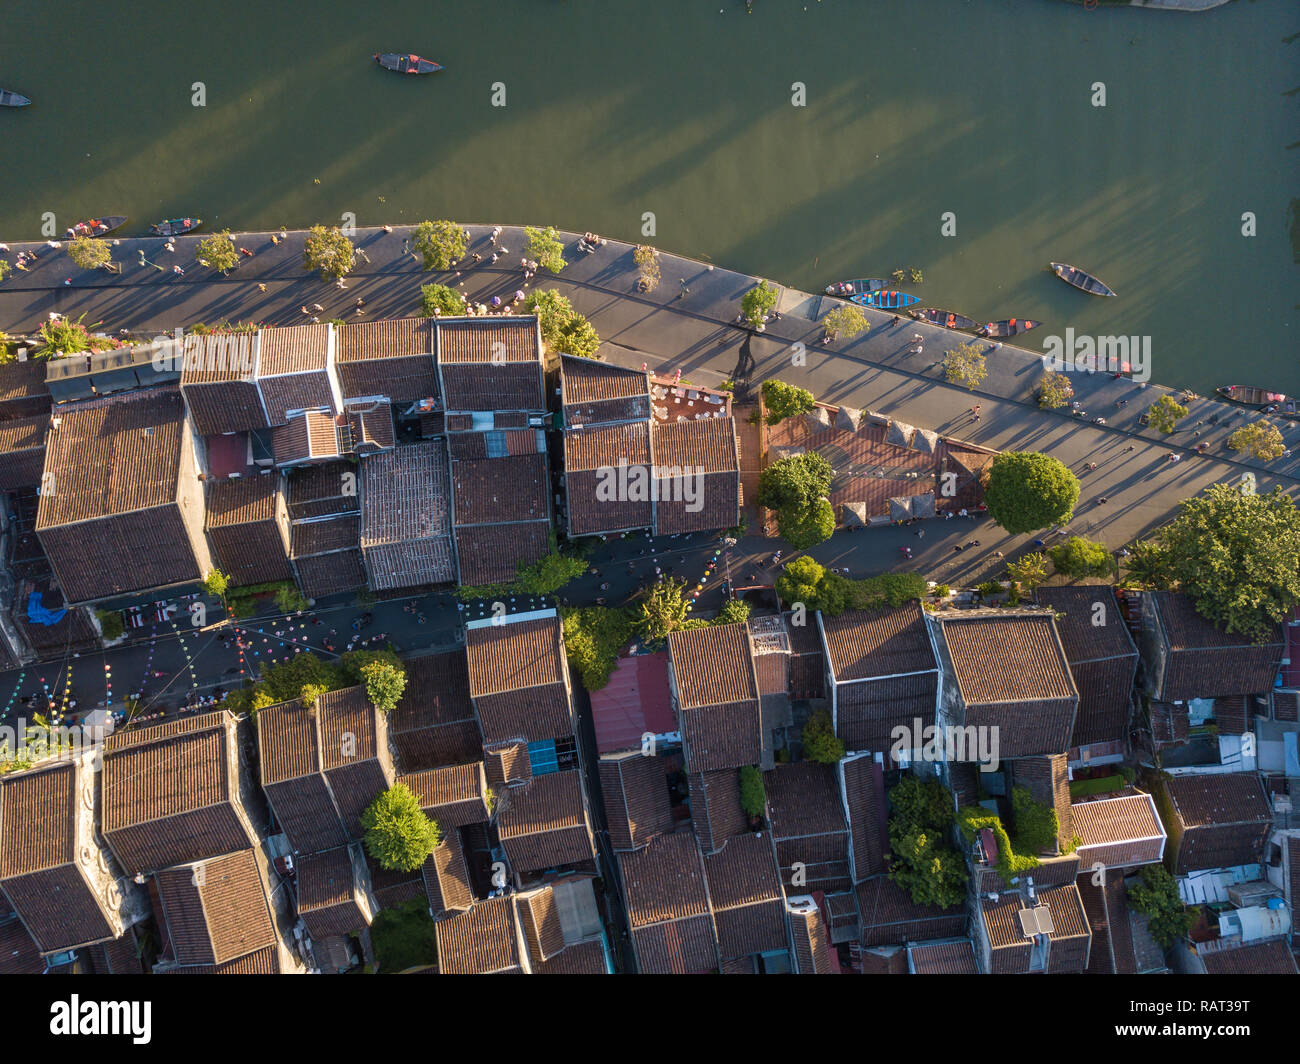 Aerial view of Hoi An old town or Hoian ancient town. Hoi An is UNESCO world heritage, one of the most popular destinations in Vietnam Stock Photo